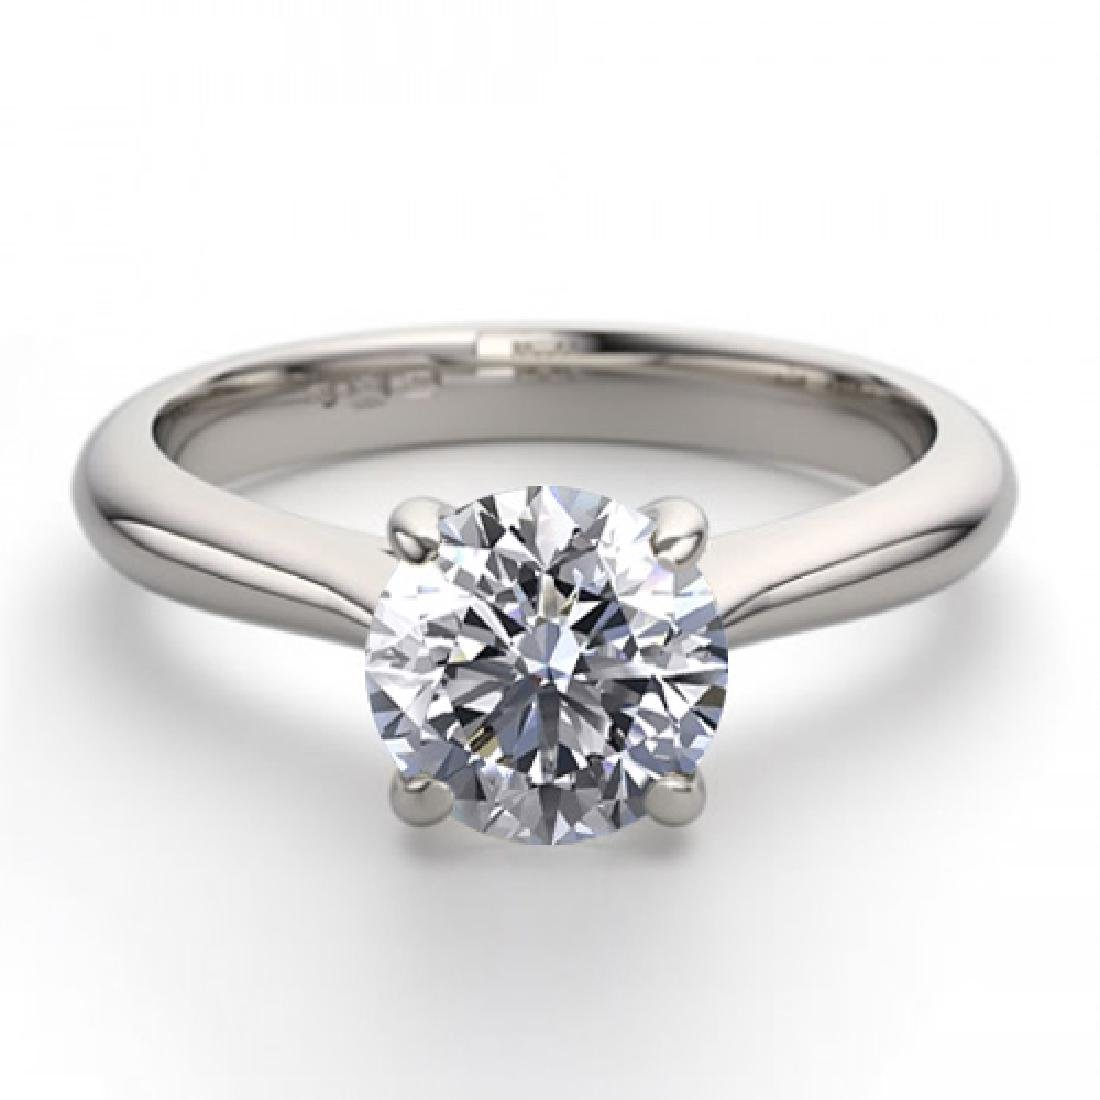 14K White Gold 1.52 ctw Natural Diamond Solitaire Ring